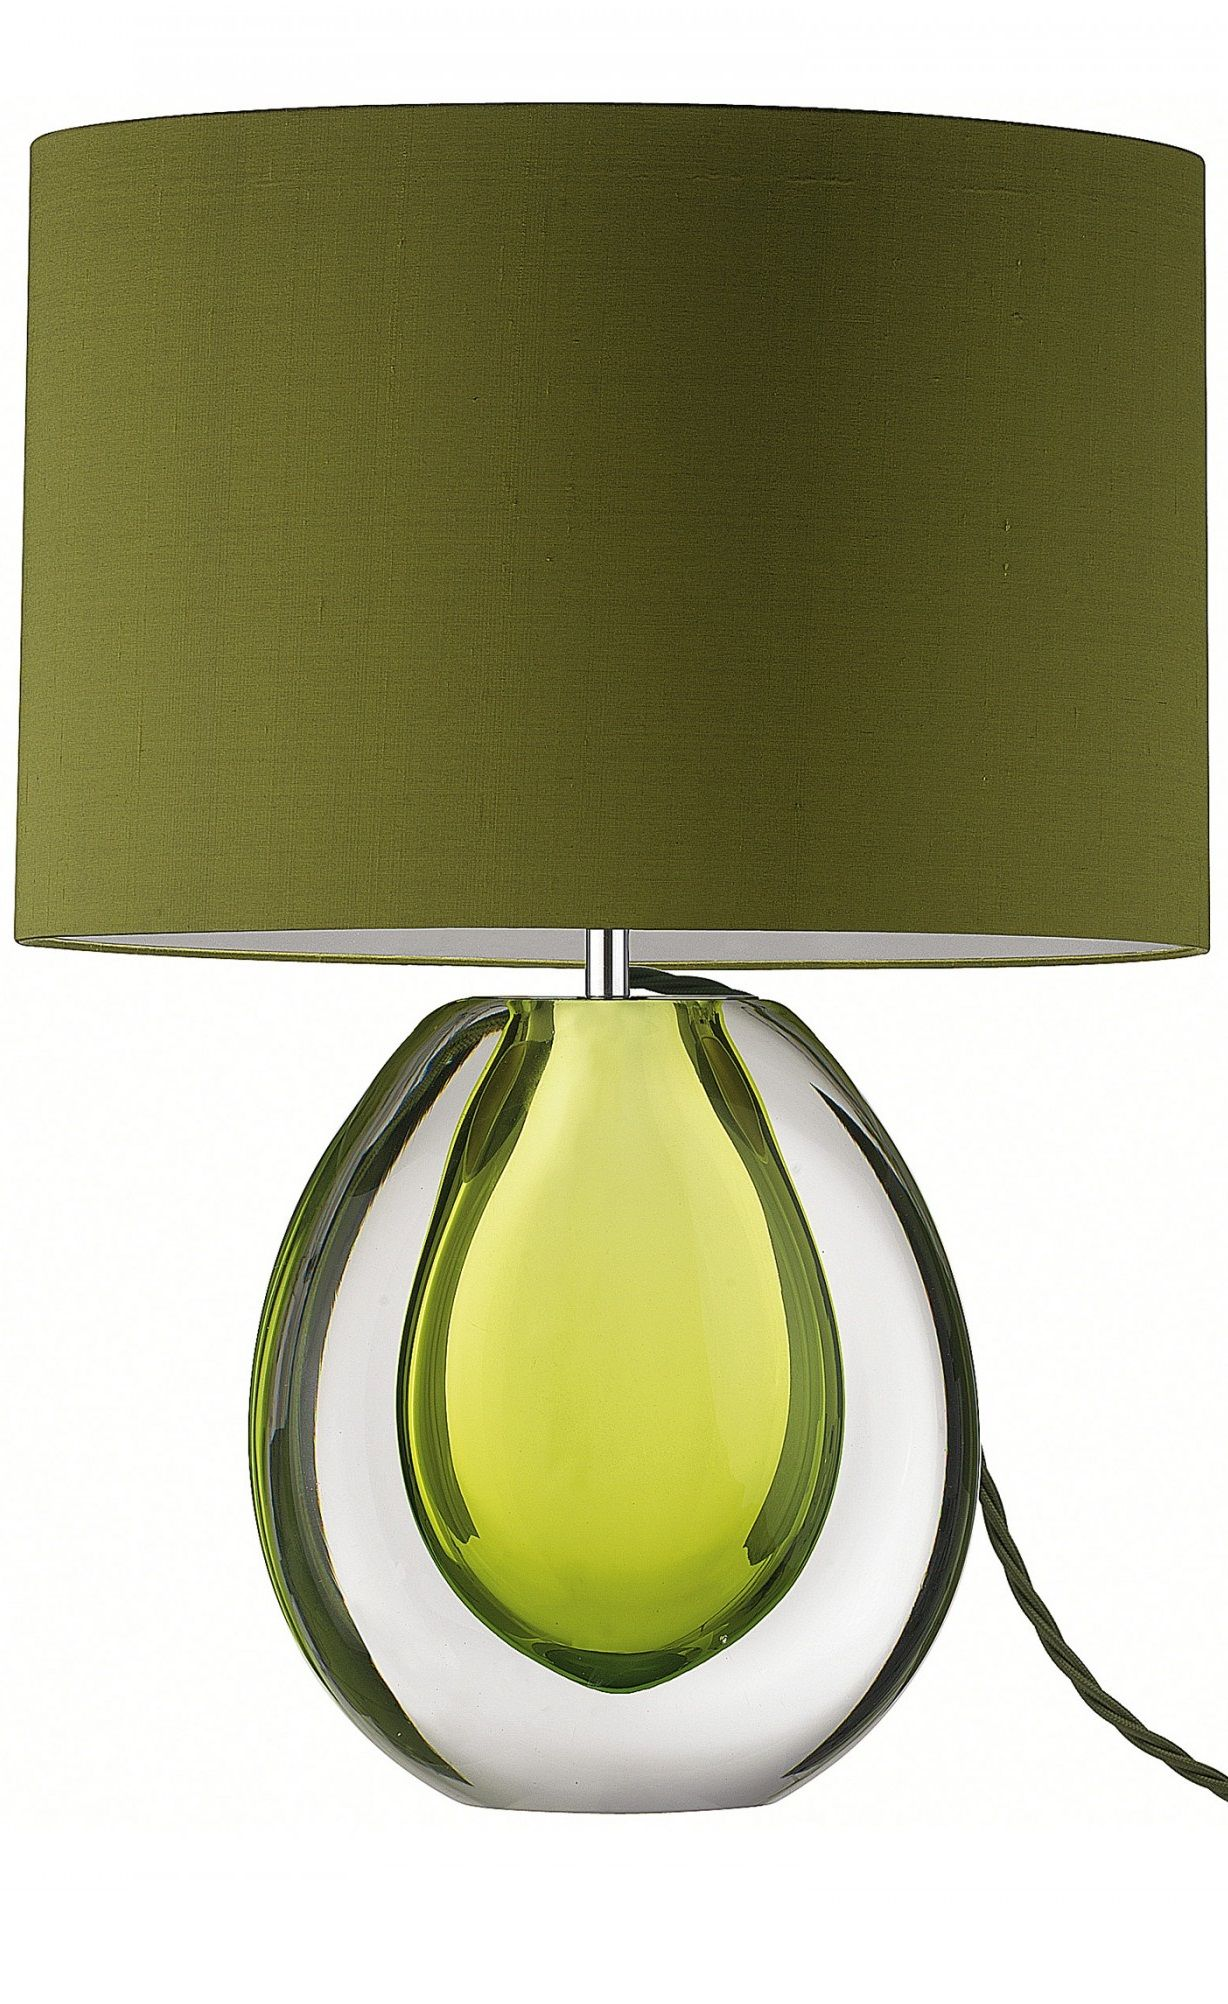 Green Green Table Lamp Table Lamps Modern Table Lamps Contemporary Table Lamps Designer Table Art Glass Table Lamp Green Table Lamp Beautiful Table Lamp